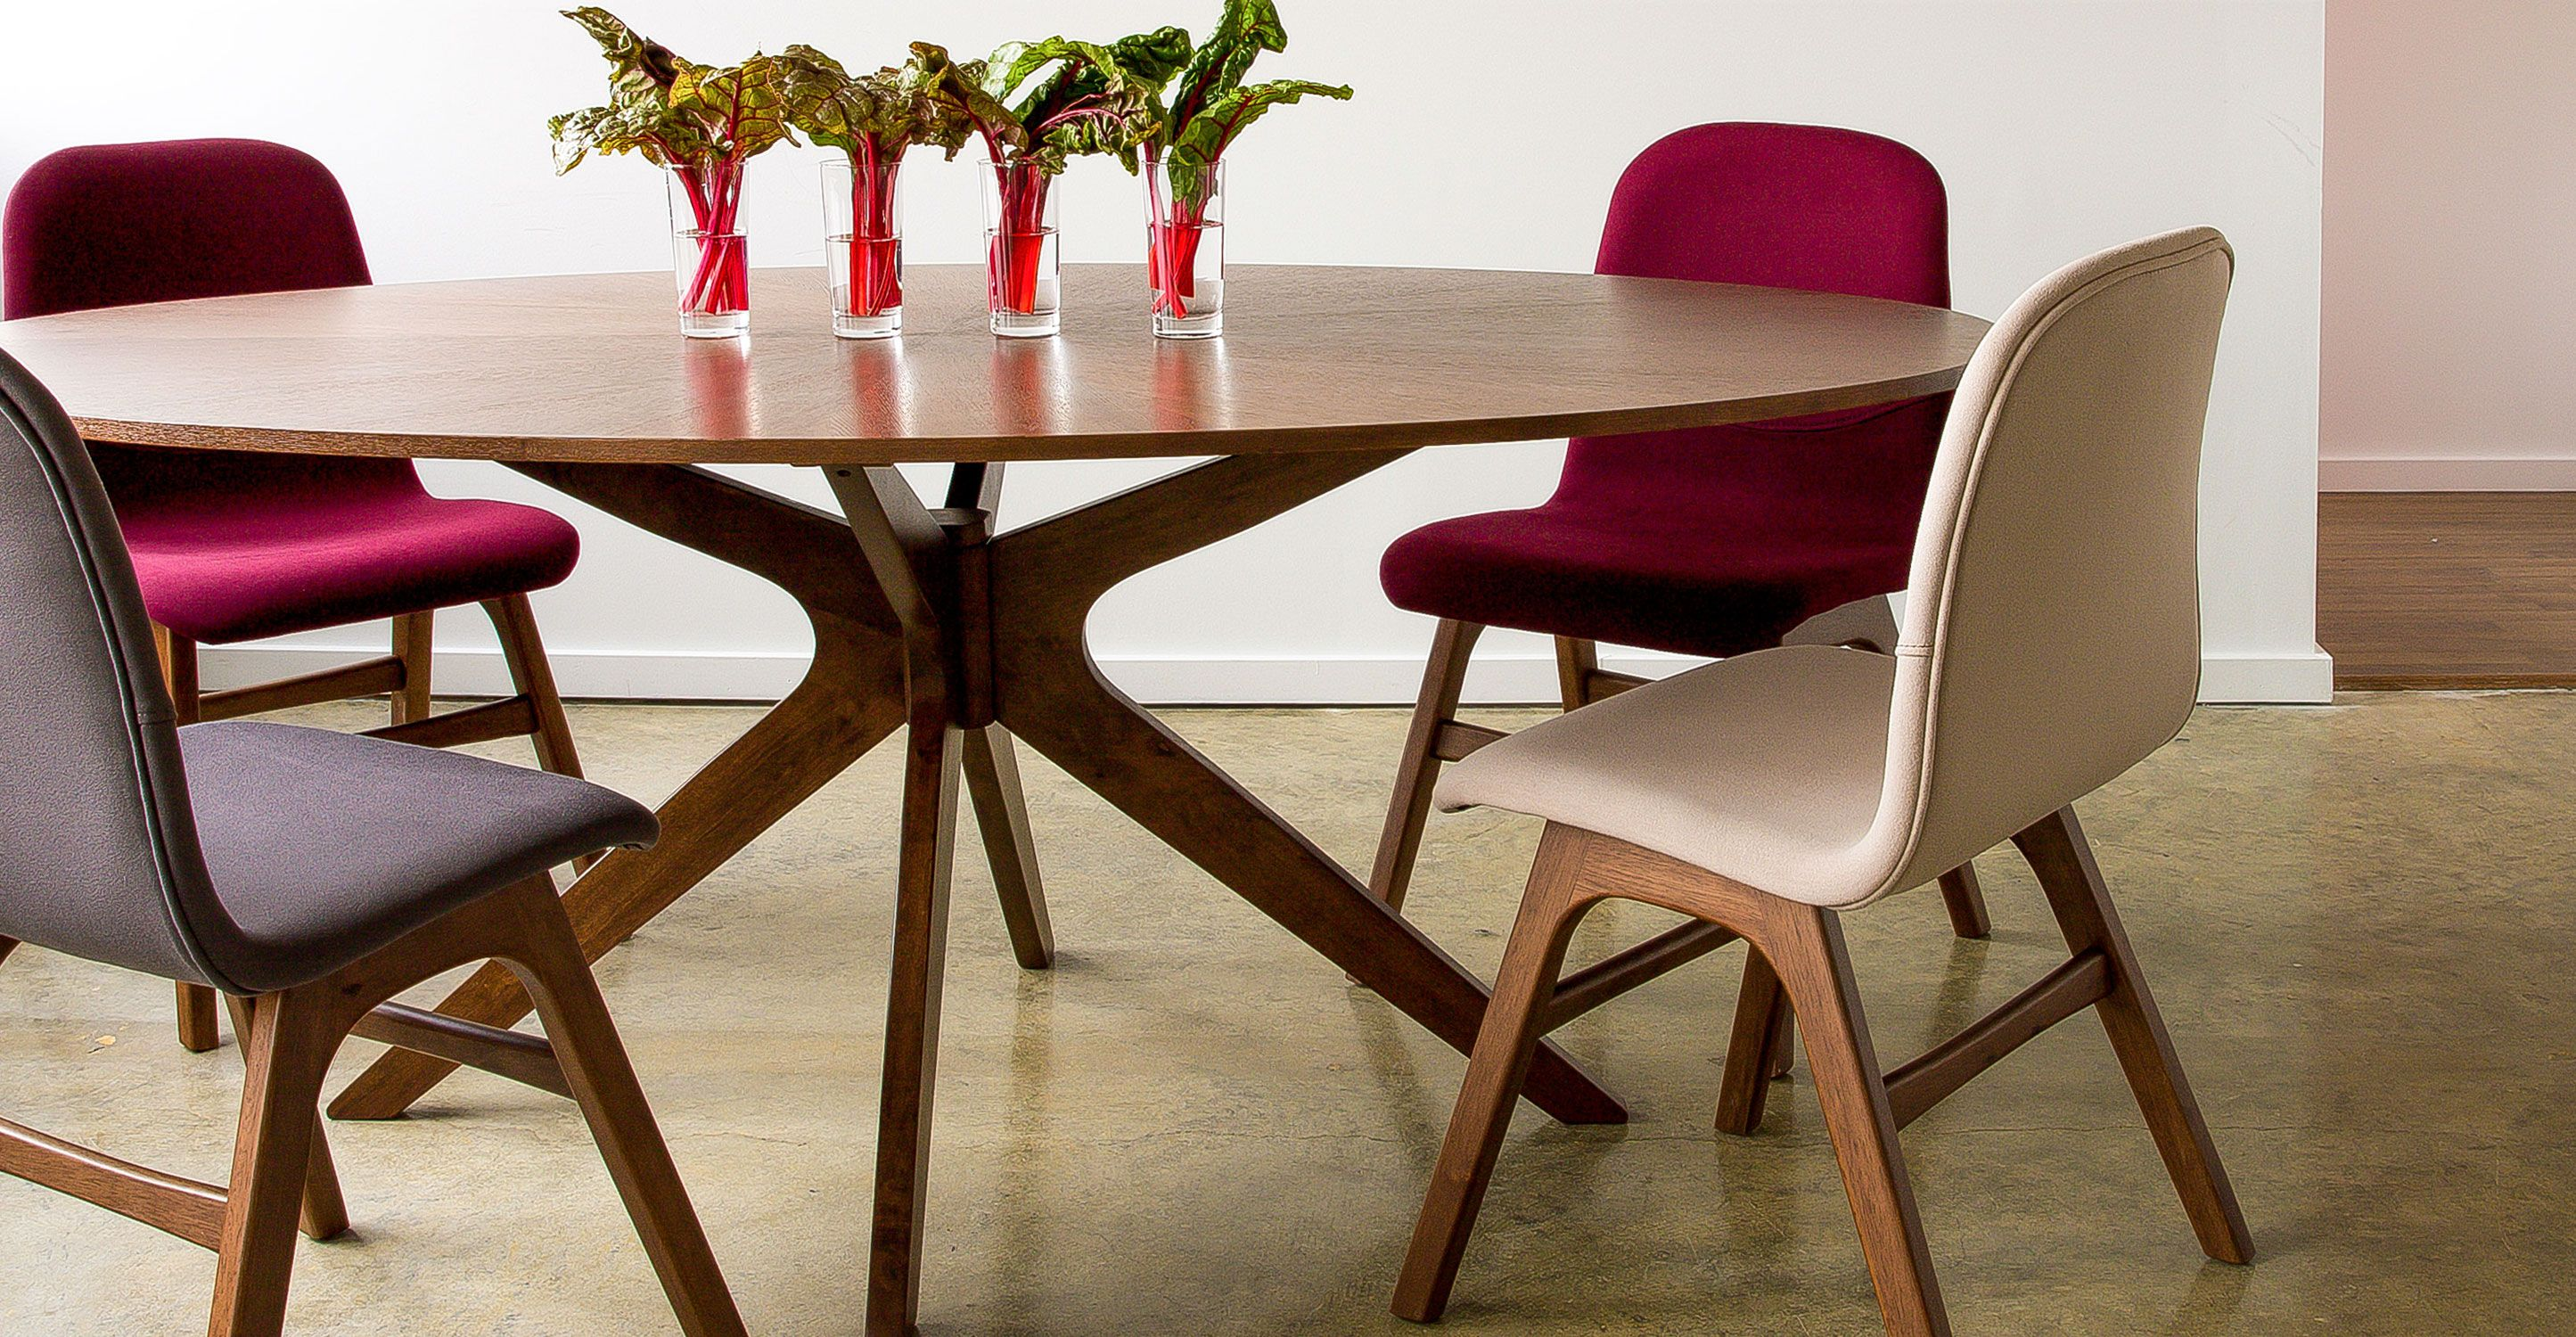 Conan Oval Dining Table Wood Tables Bryght Modern Mid Century And Scandinavian Furniture